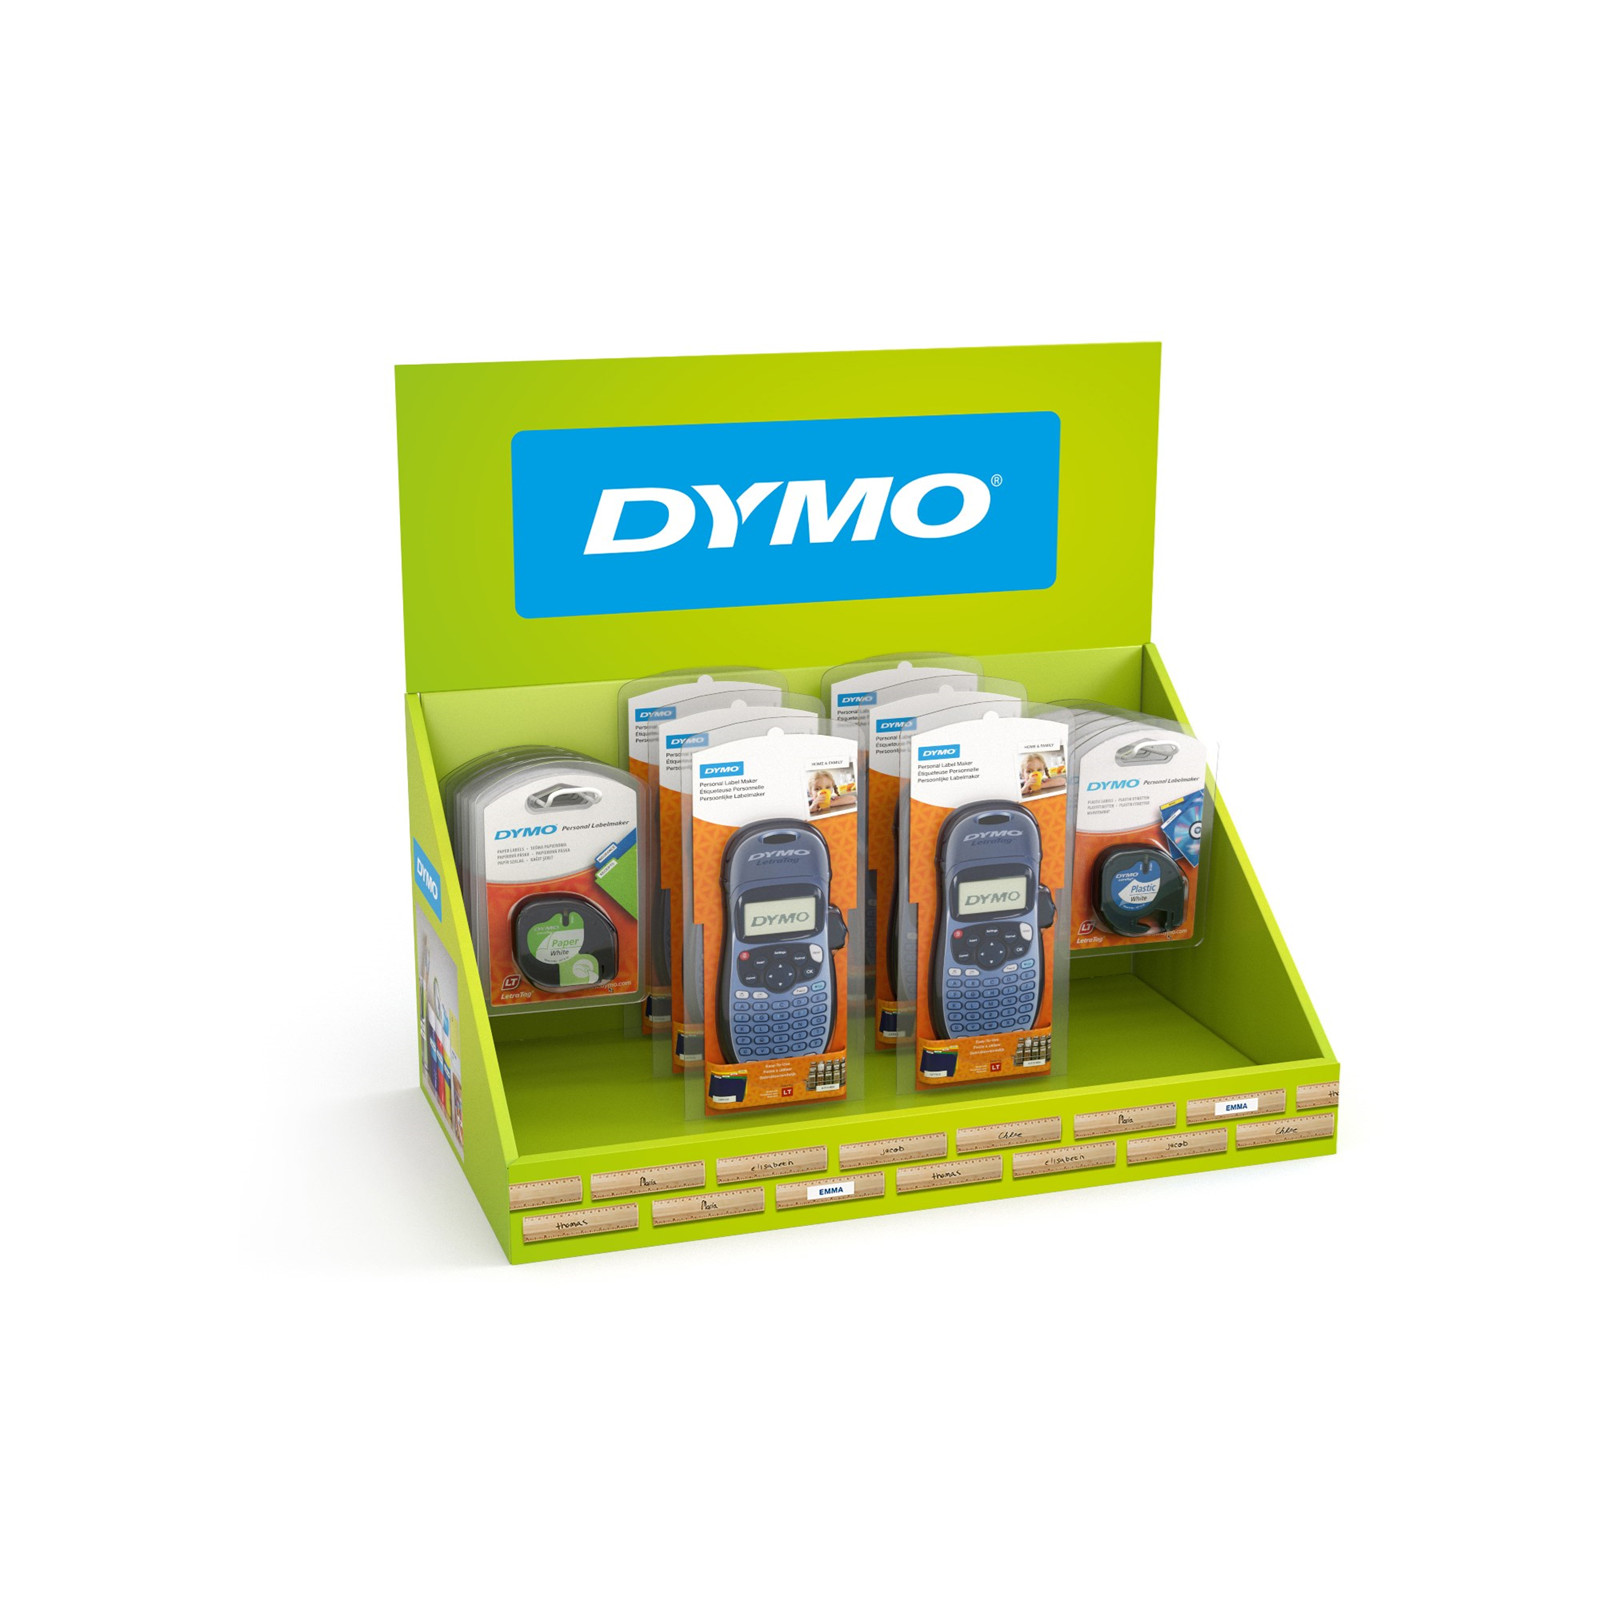 Dymo LetraTag 100H & tapes in display (6+20)